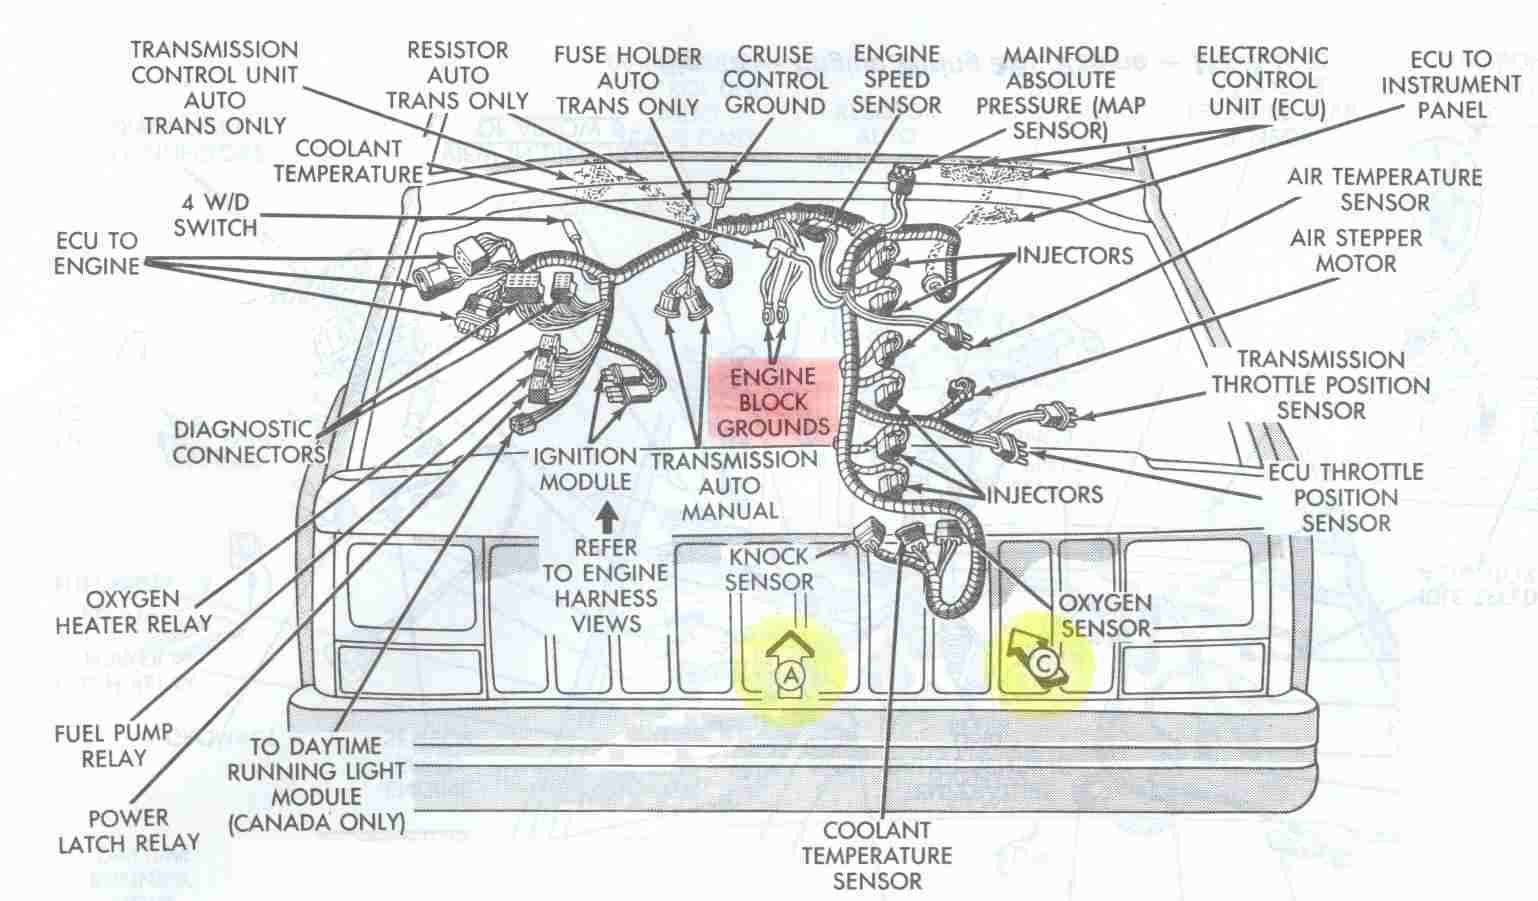 hight resolution of 1991 jeep comanche alternator wiring diagram wiring library1991 jeep comanche alternator wiring diagram